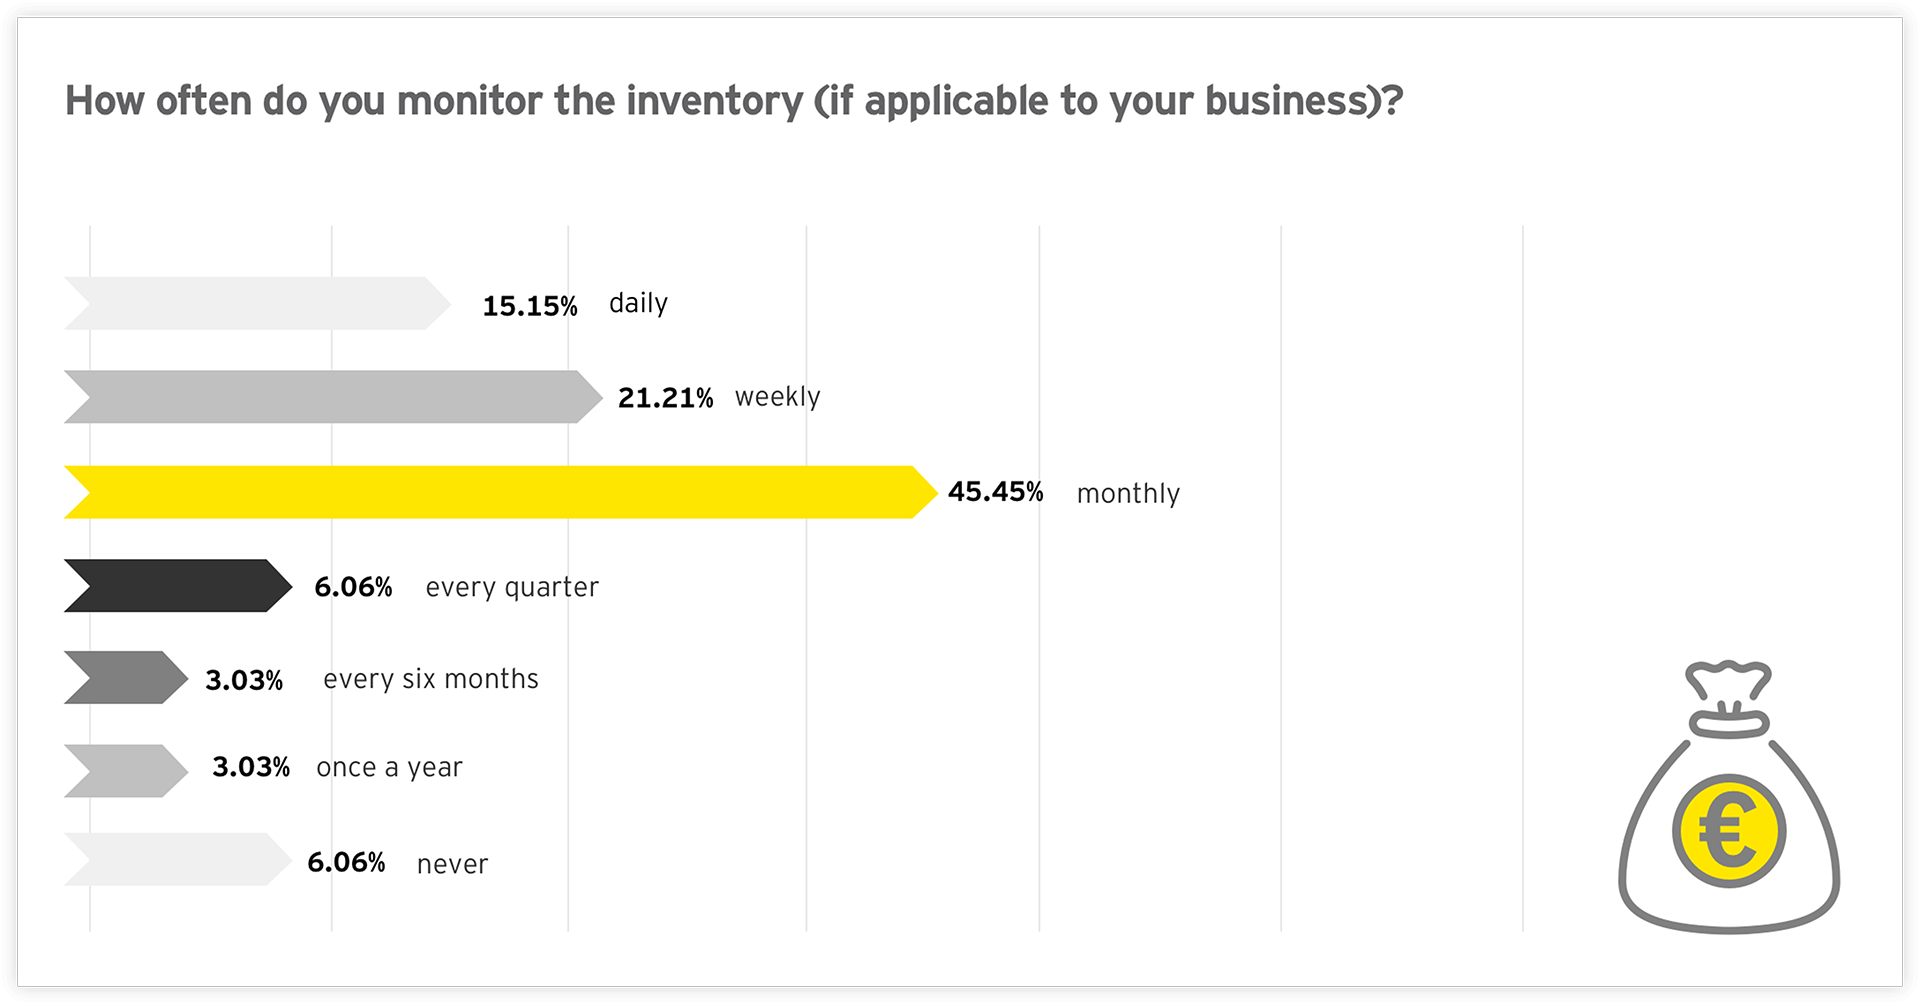 Graph: How often do you monitor the inventory (if applicable to your business)?